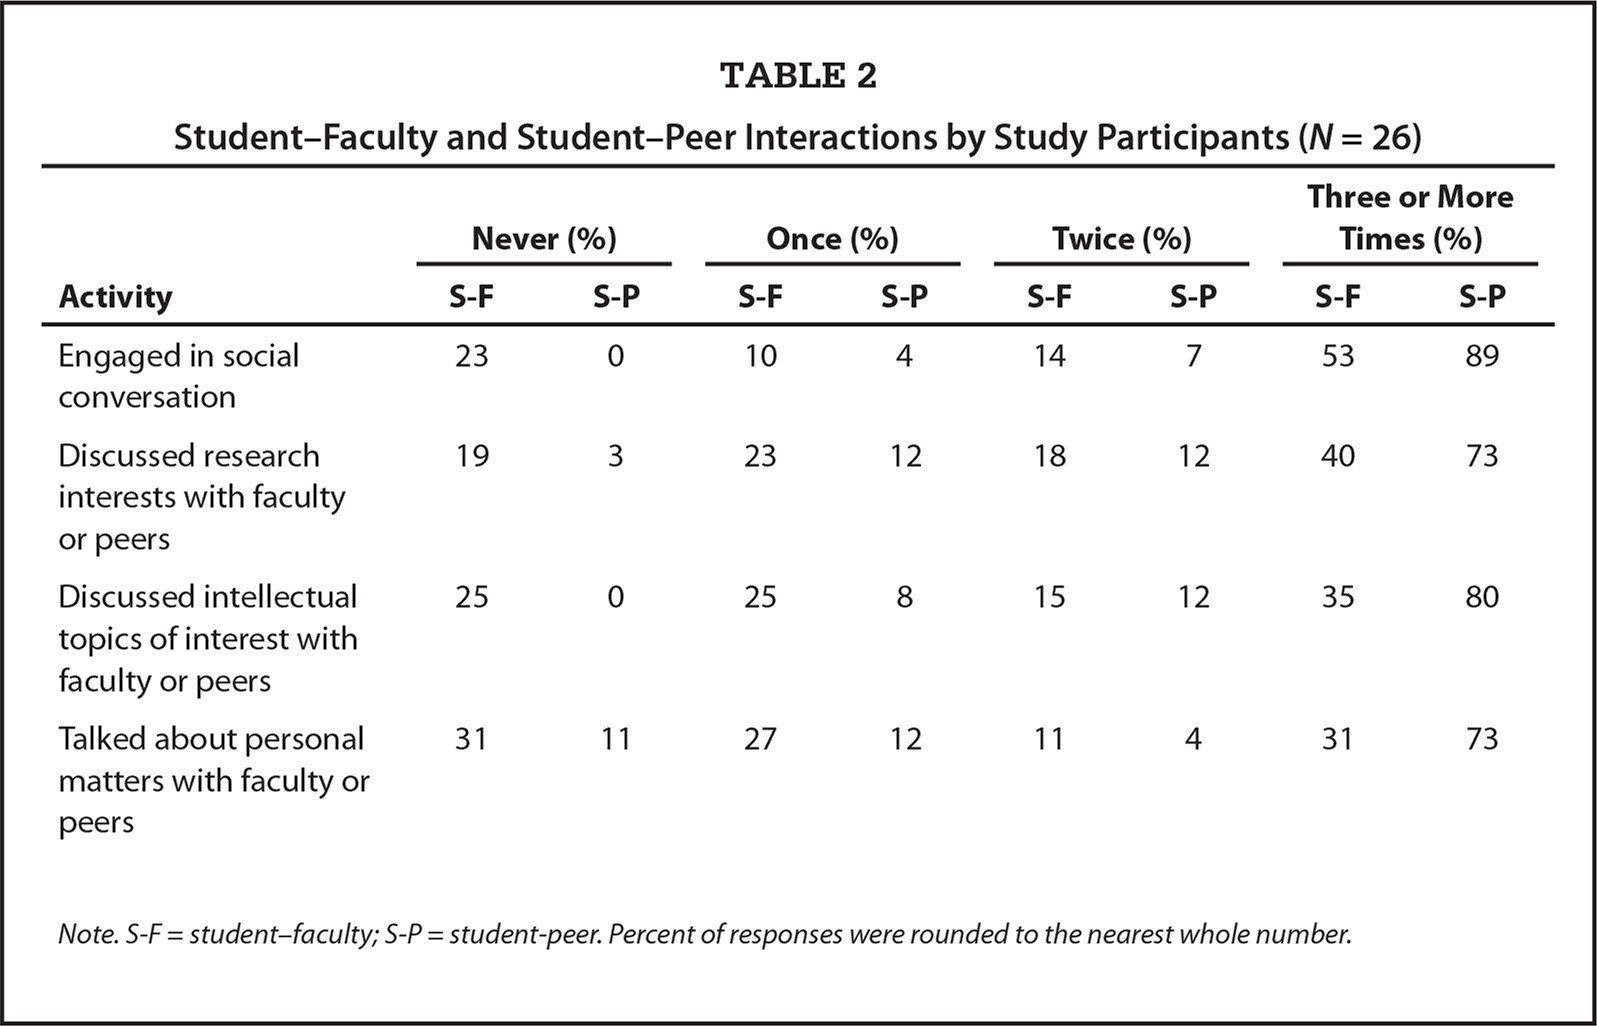 Student–Faculty and Student–Peer Interactions by Study Participants (N = 26)